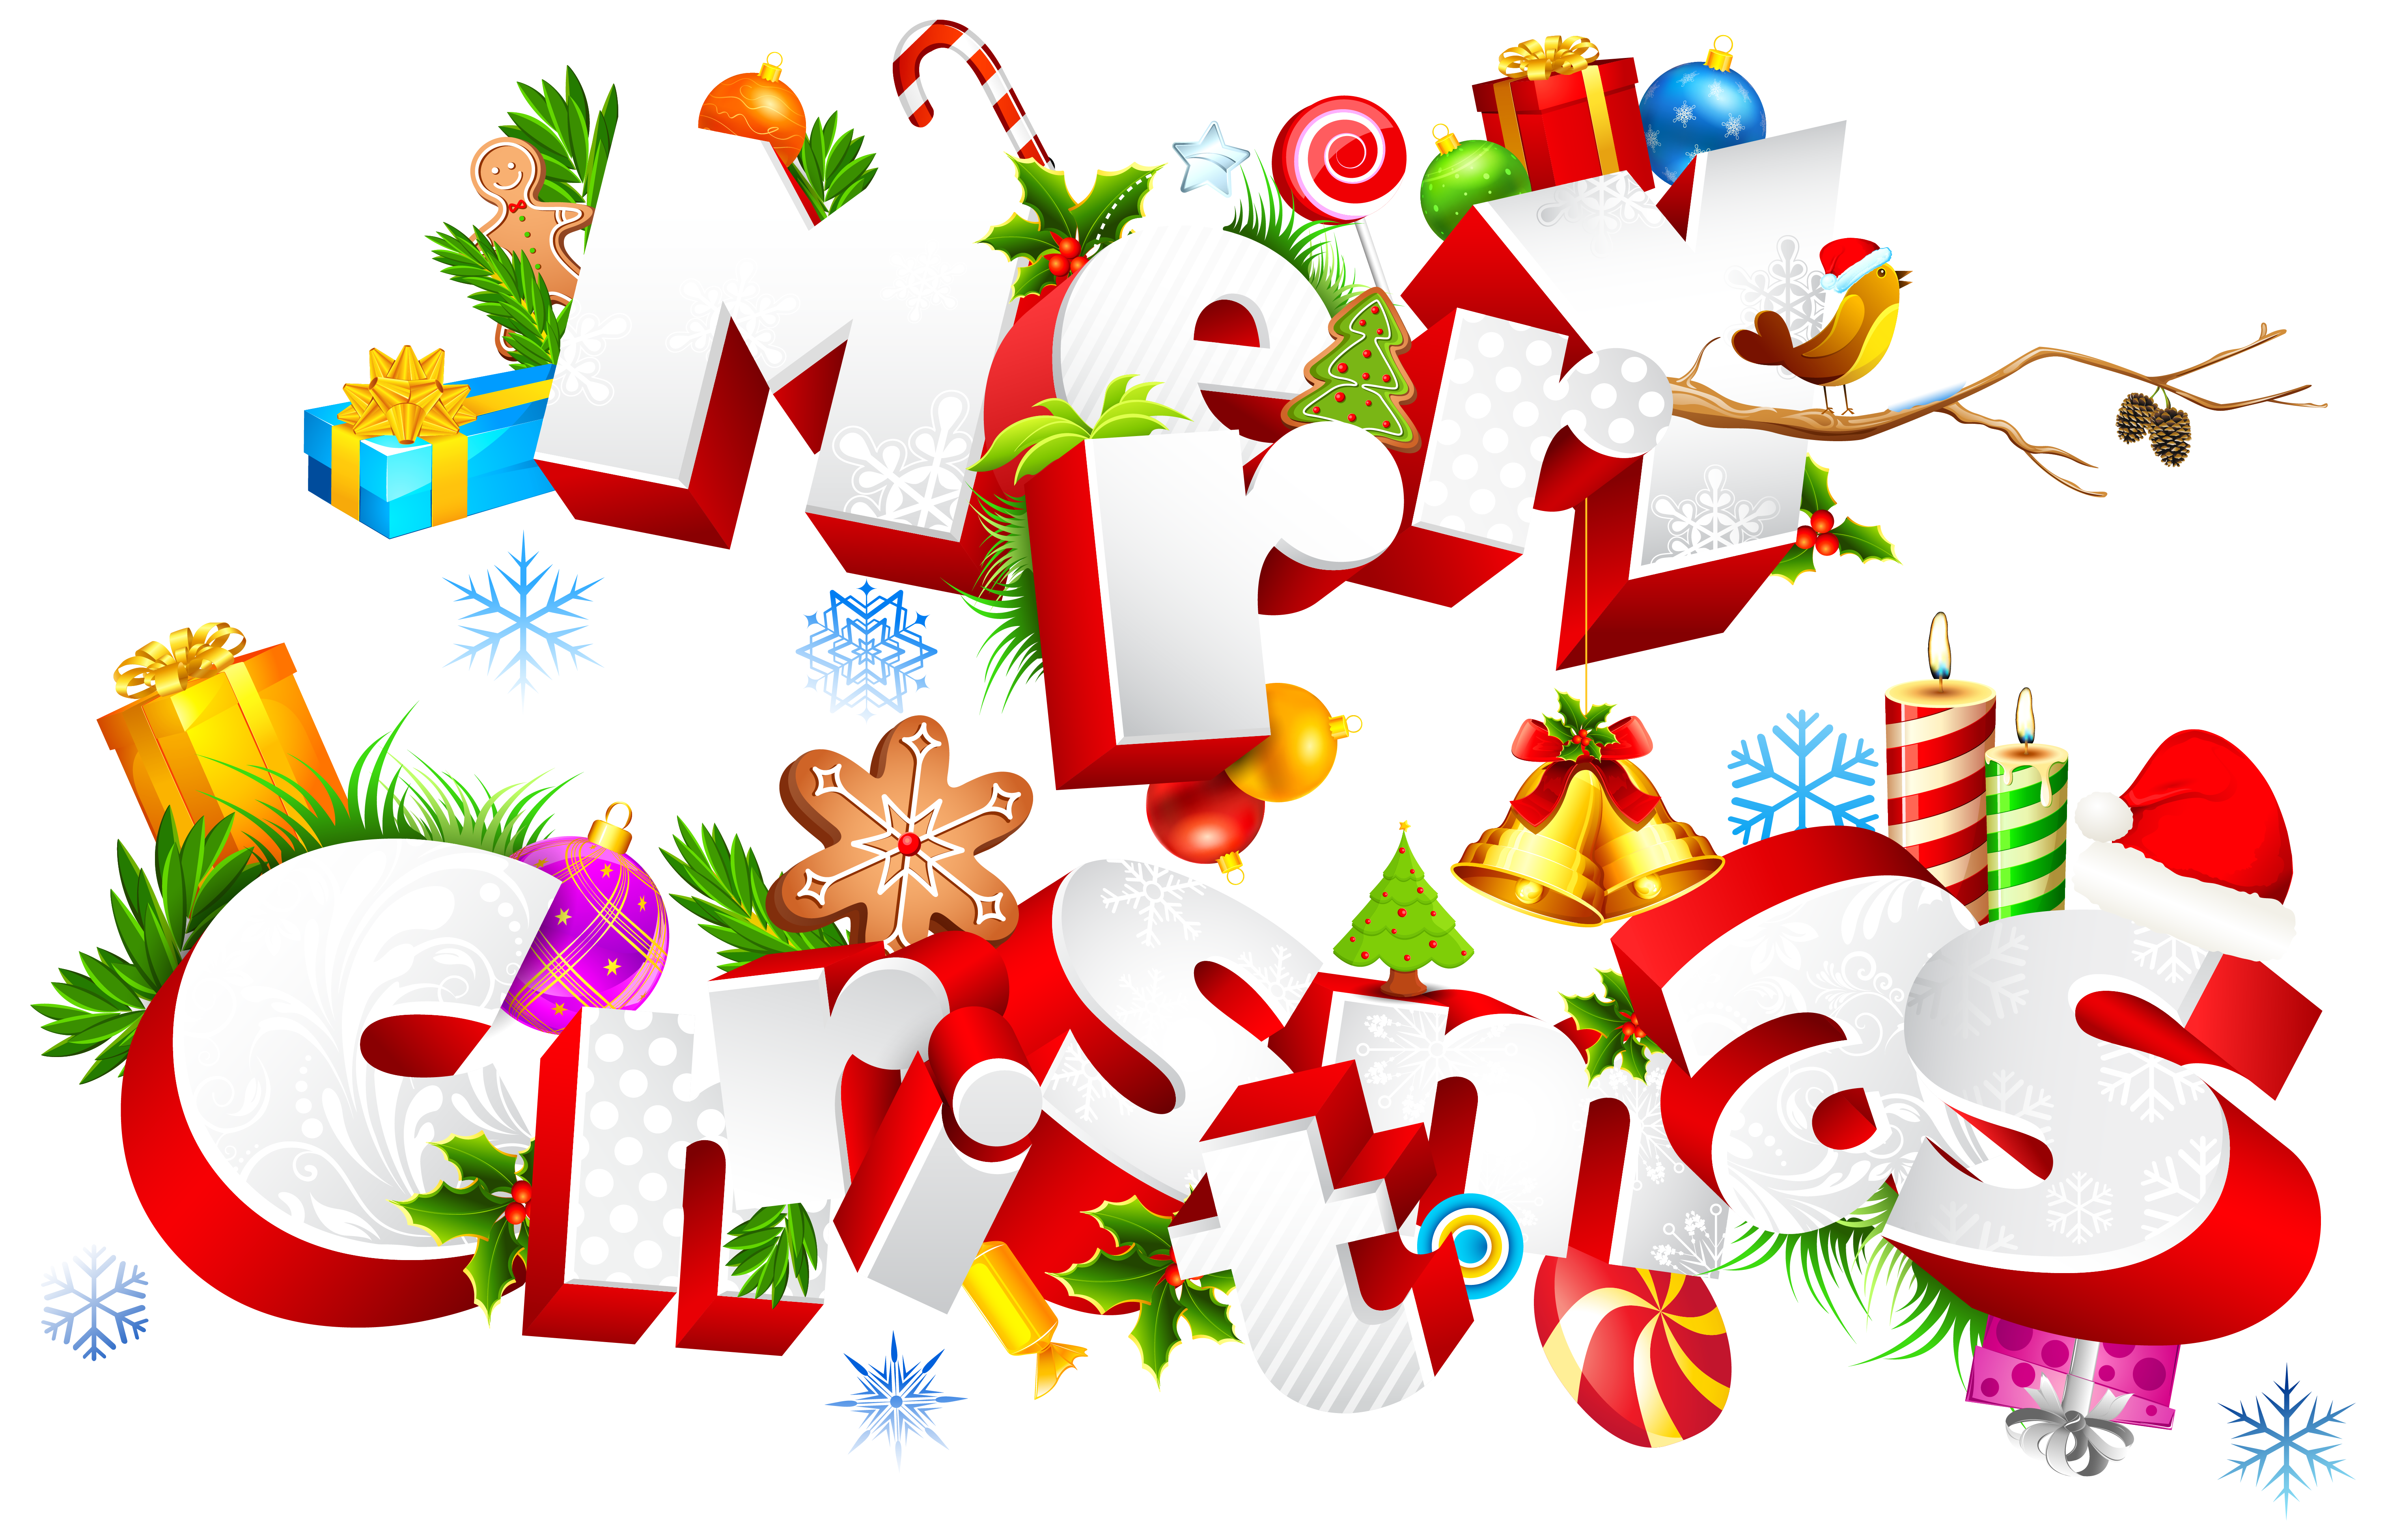 Sweet merry png image. Clipart piano christmas